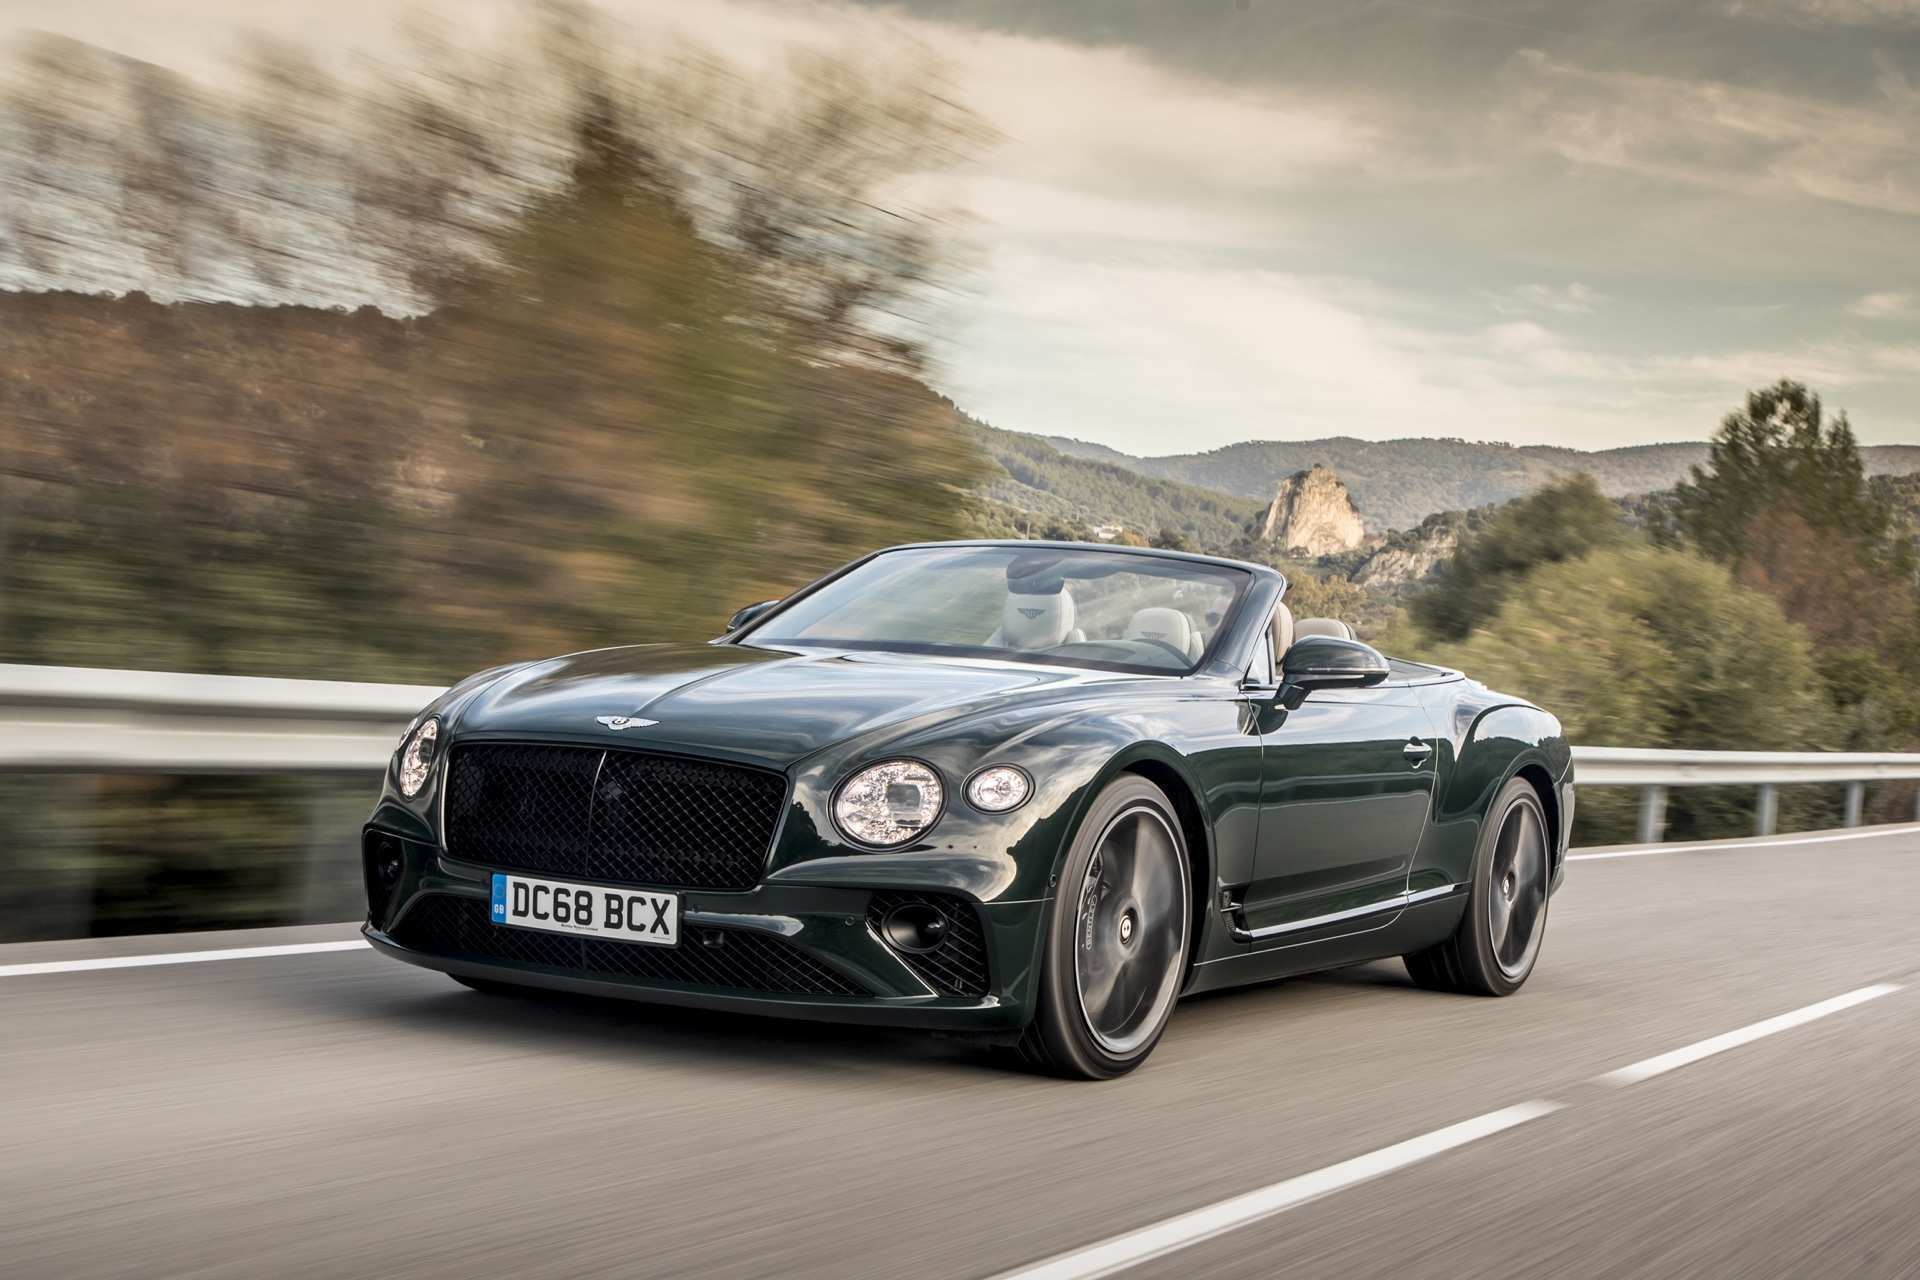 75 The Best 2020 Bentley Continental GT Research New